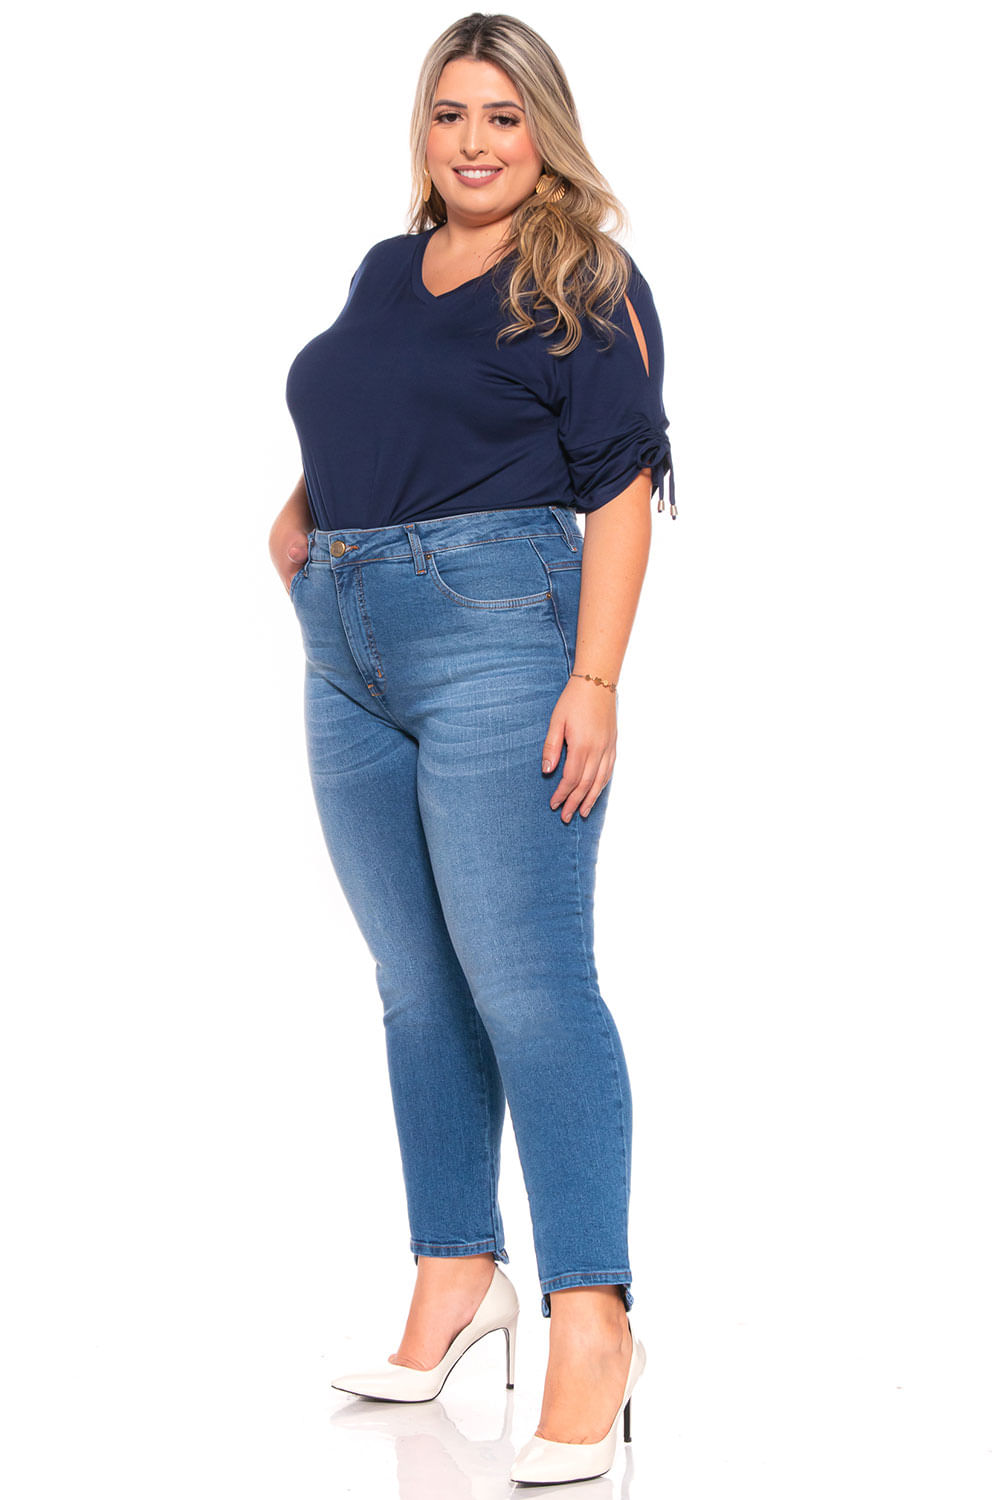 FCT5096_Calca_Cropped_Plus_Size_Jeans_AZUL_2